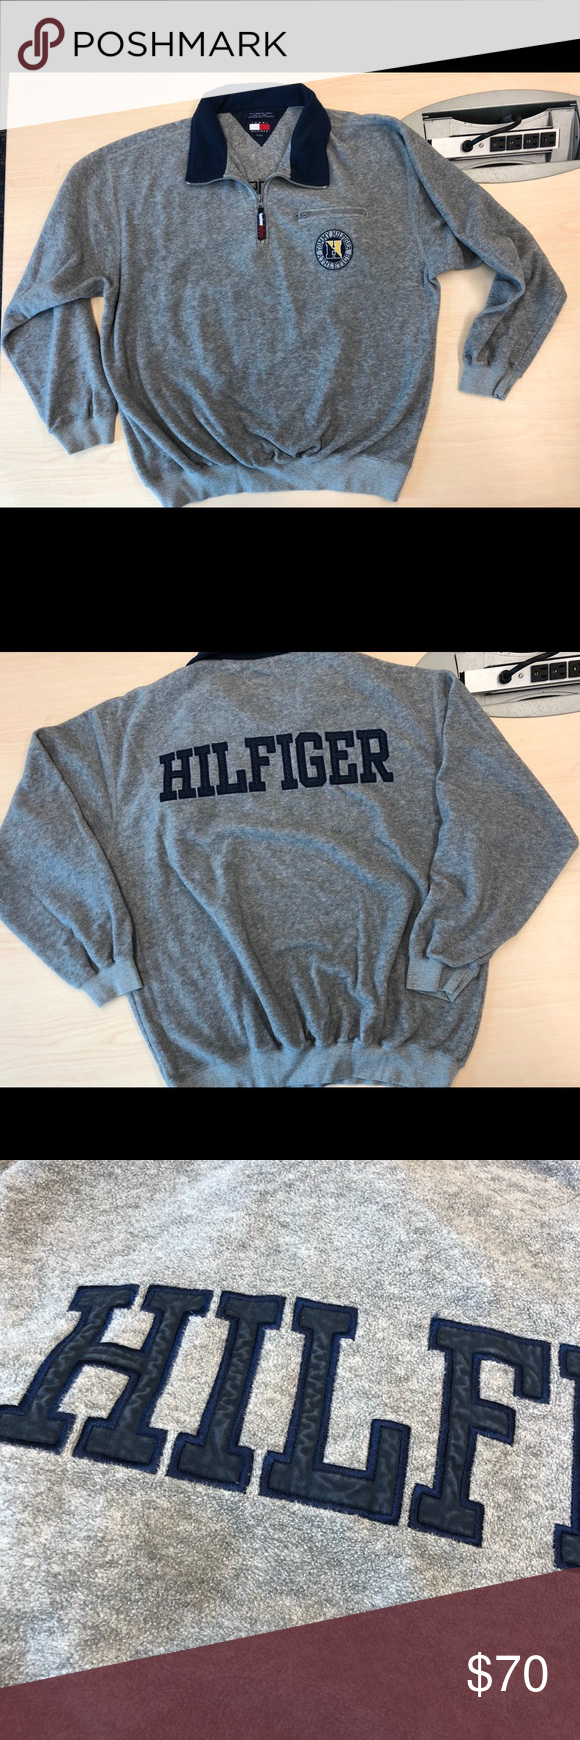 Tommy hilfiger athletics fleece jacket xl vintage tommy hilfiger